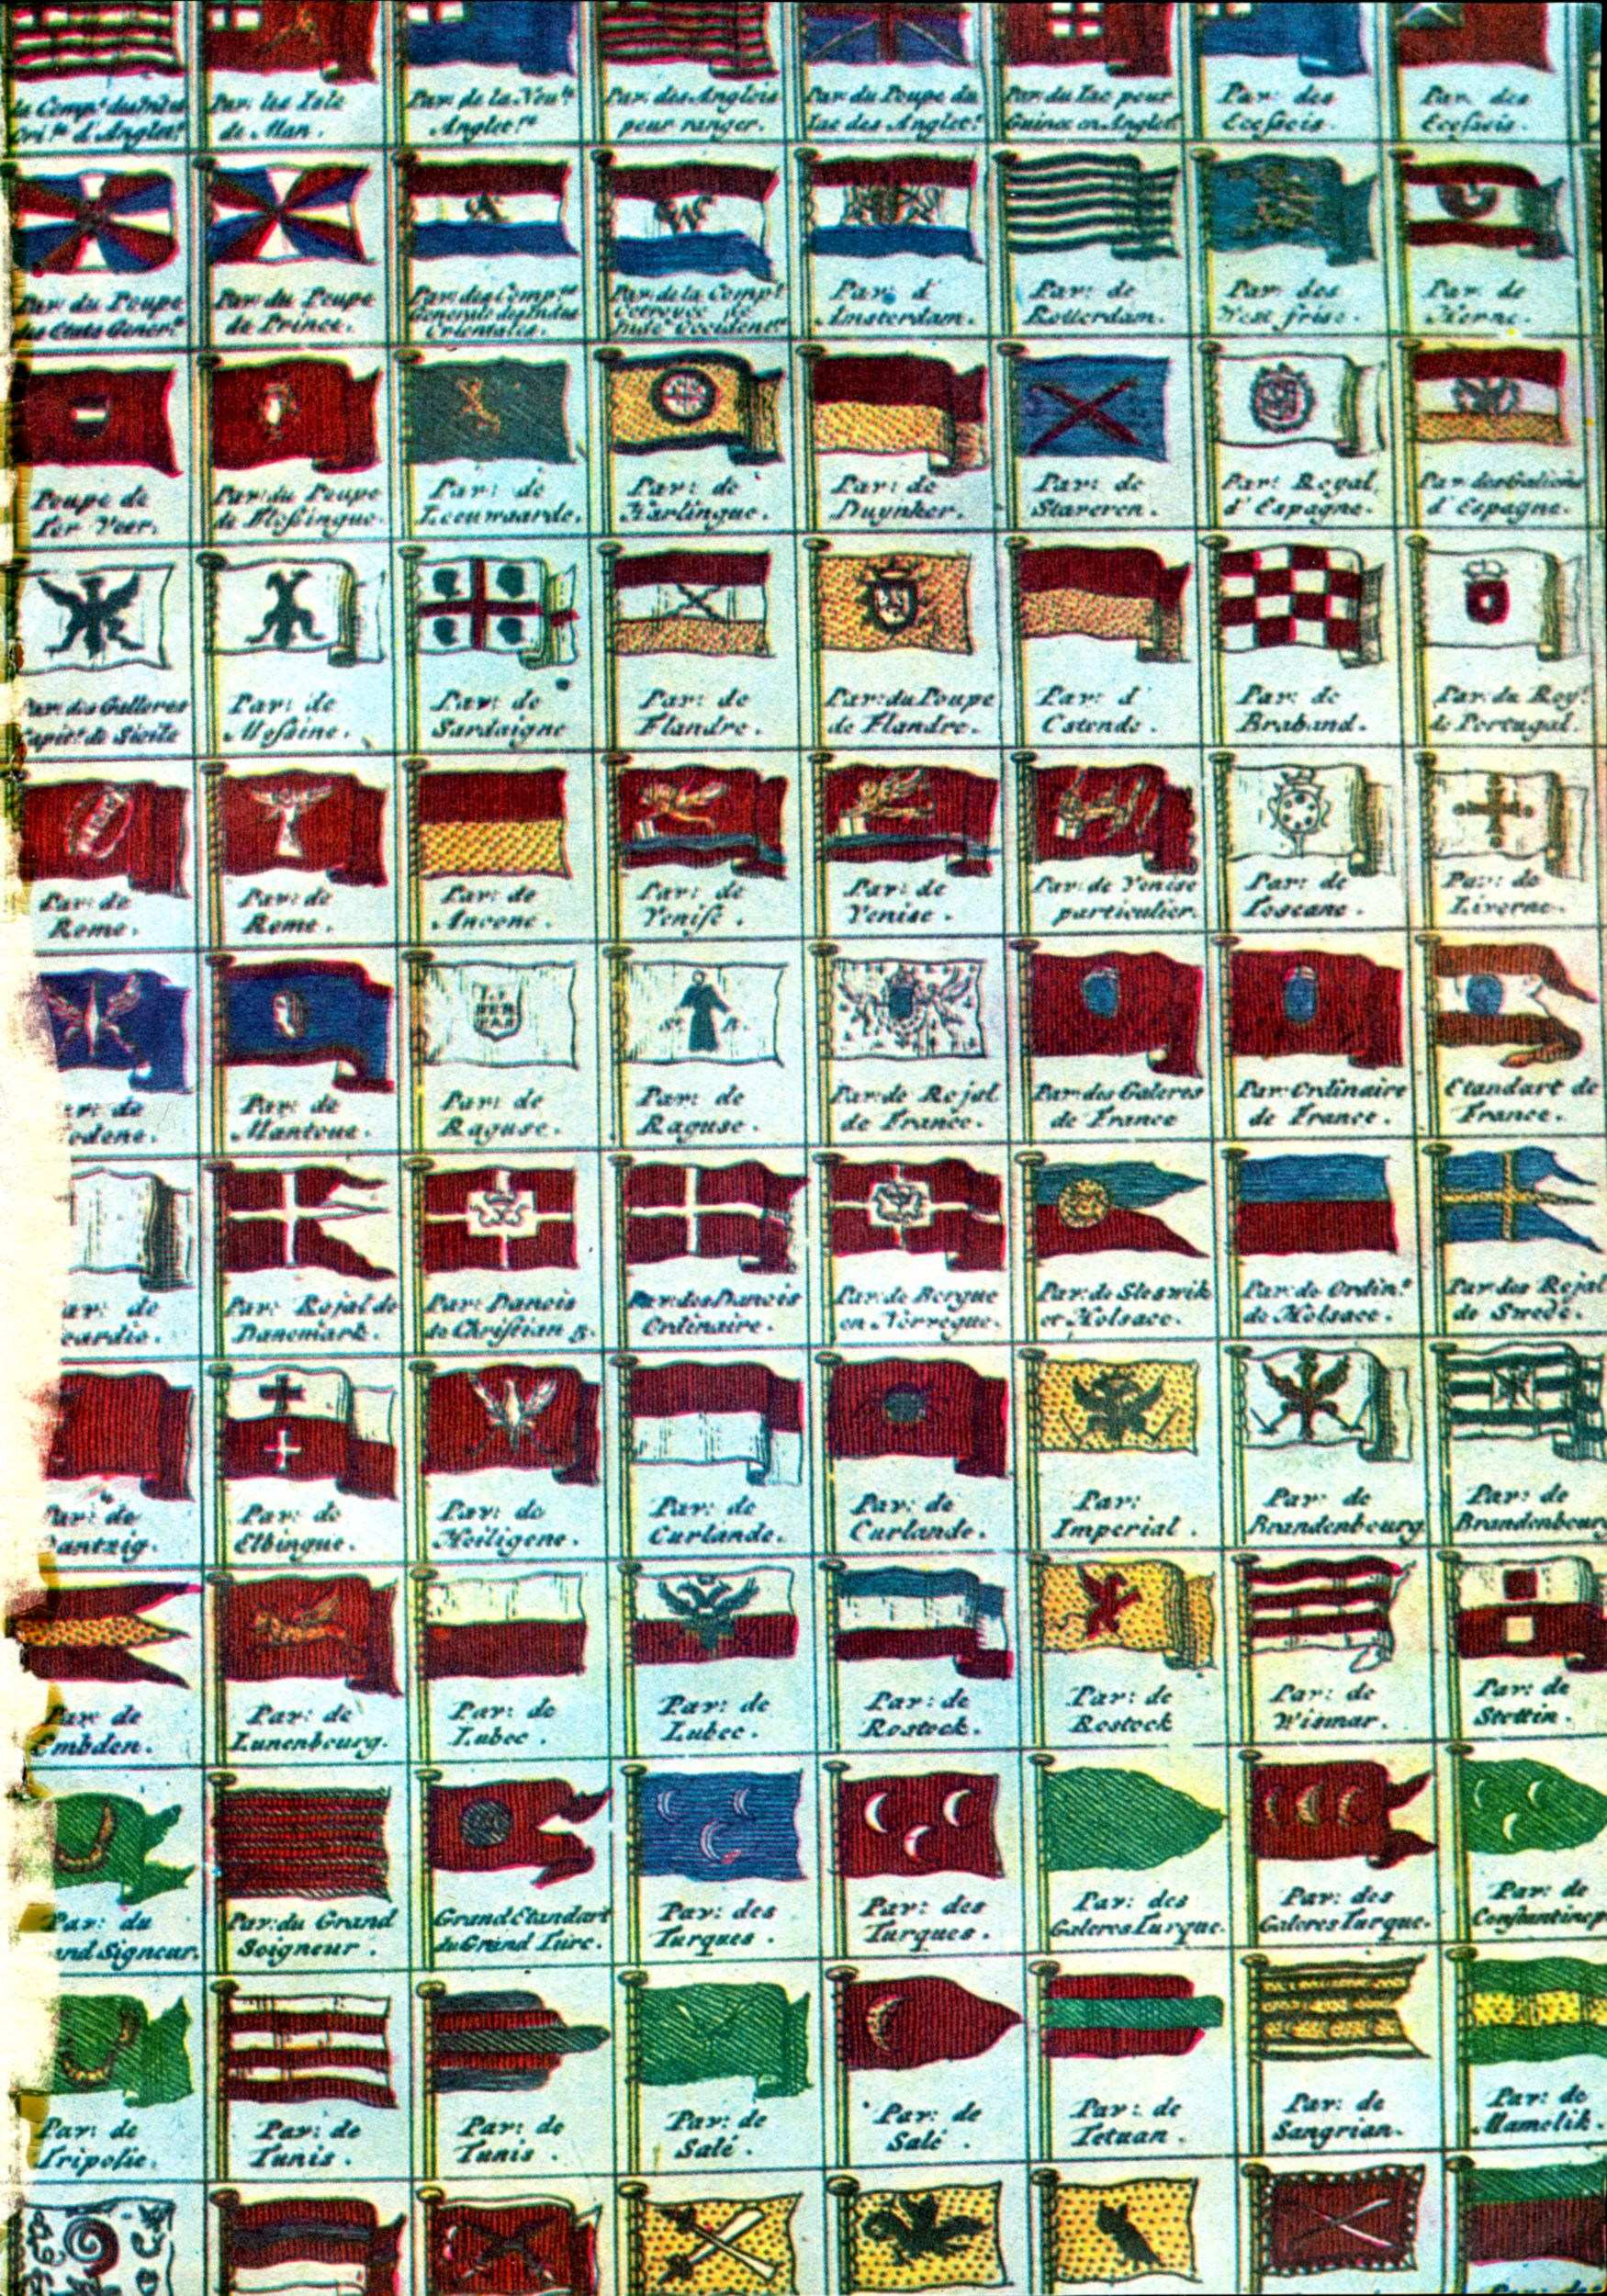 United Nations Flags With Names File:Naval flags of th...